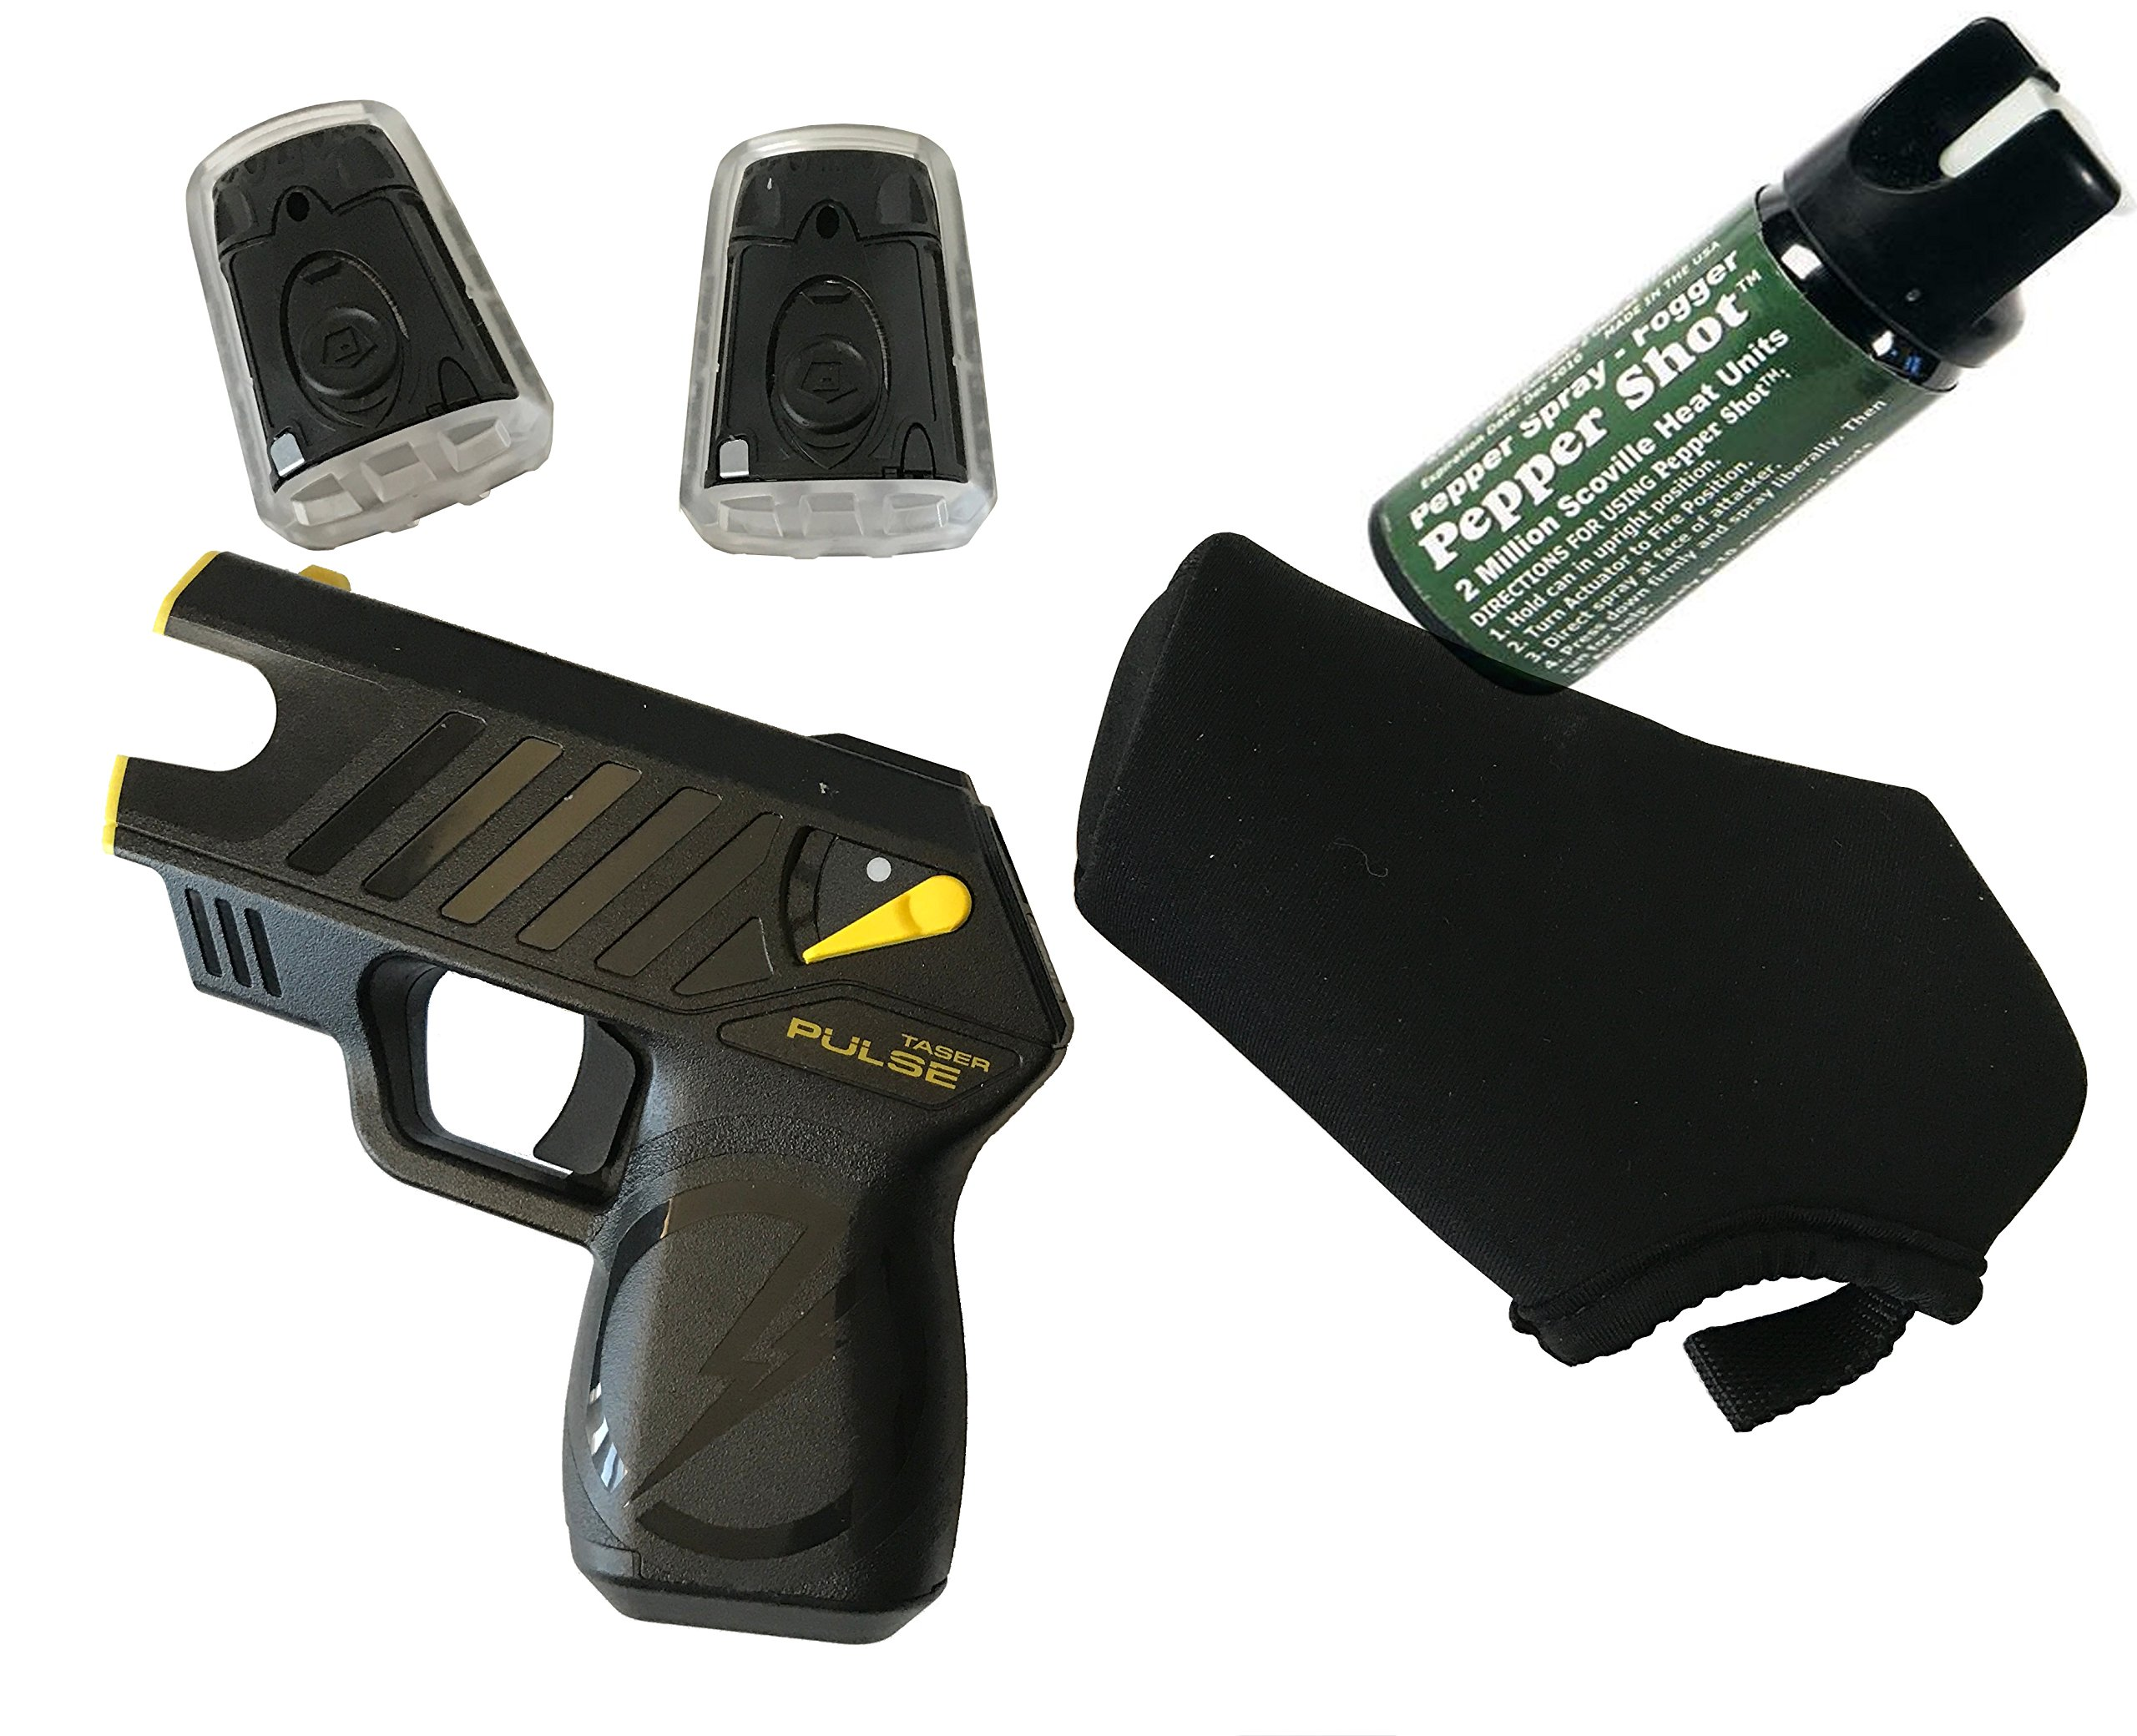 Taser Pulse with Laser, LED, 2 Live Cartridges, 1 Soft holster, Lithium Power Magazine(Battery Pack), and Target, (L5.25'' H 4.75'' W1.25'') & 1 Pepper Shot 2 oz Pepper Spray Fogger by giftsandmore